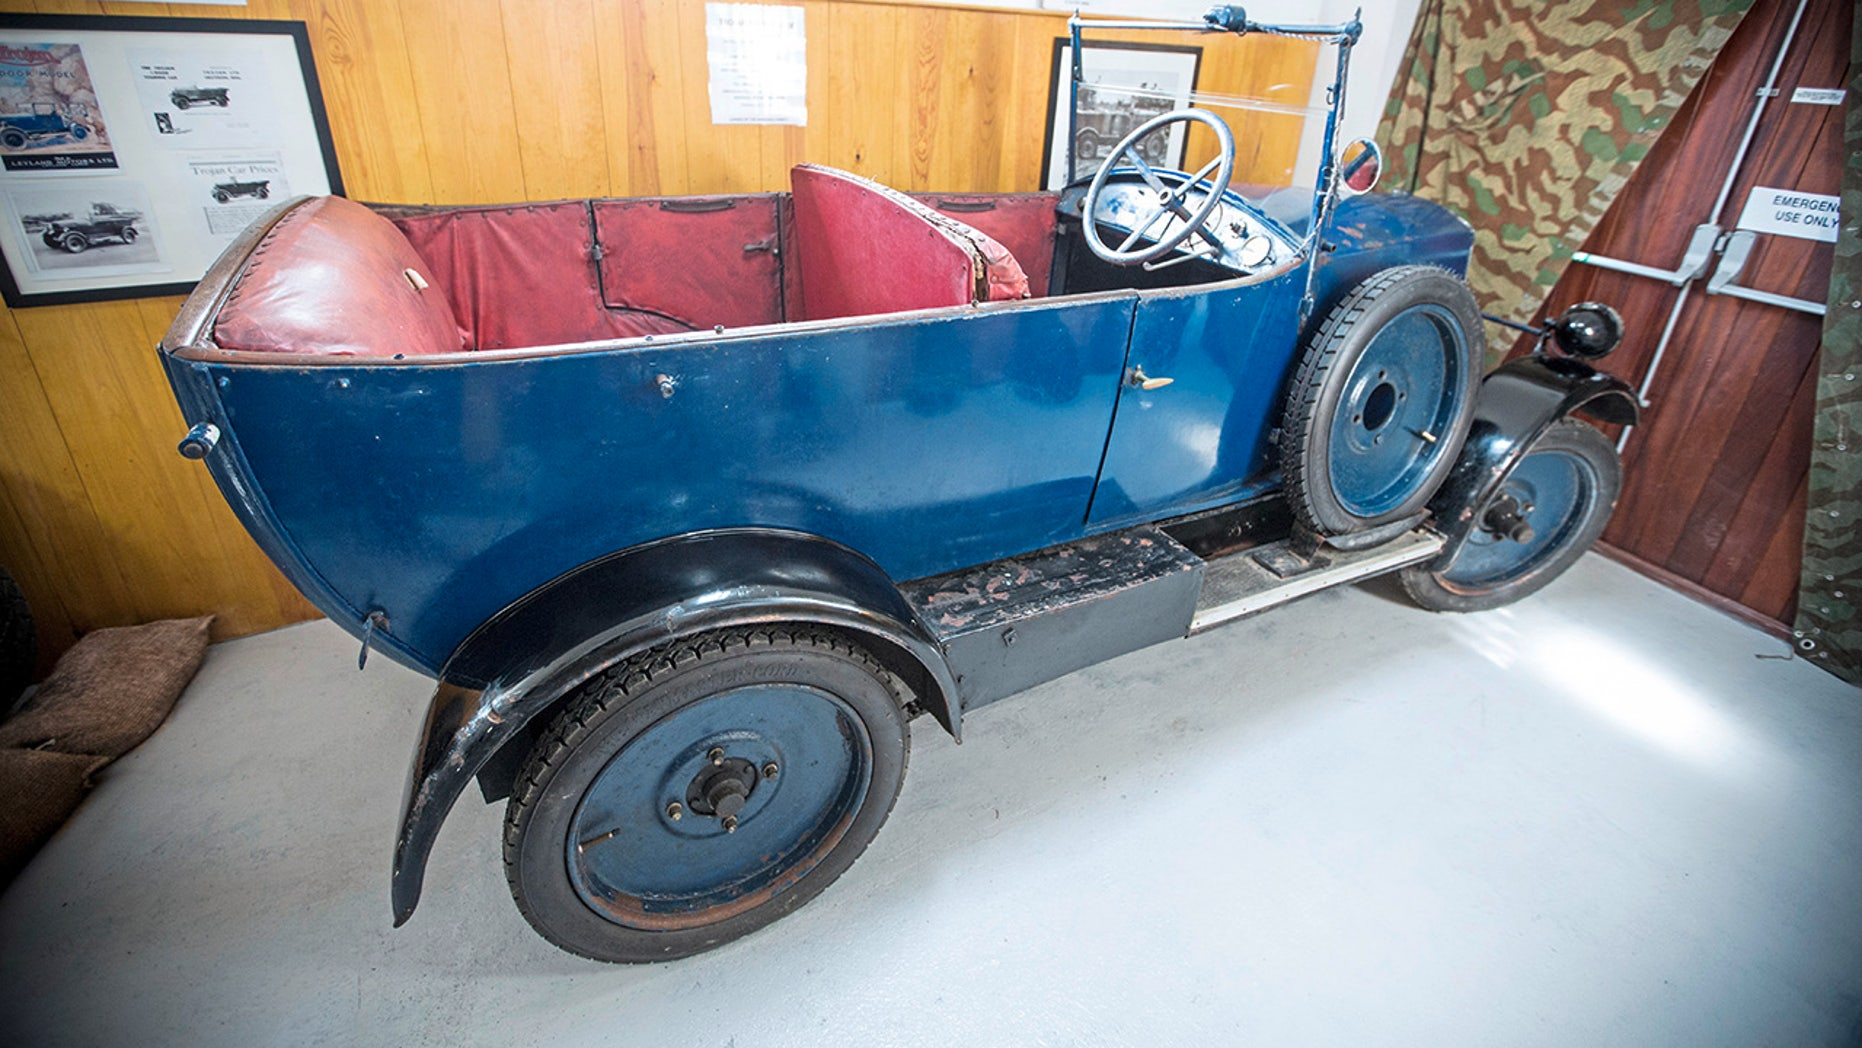 The 1926 Trojan Tourer was successfully hidden inside a vinery shed during WWII after the Germans banned all cars for private use. Cars seized on the island were requisitioned for as little as £1 and moved to France.